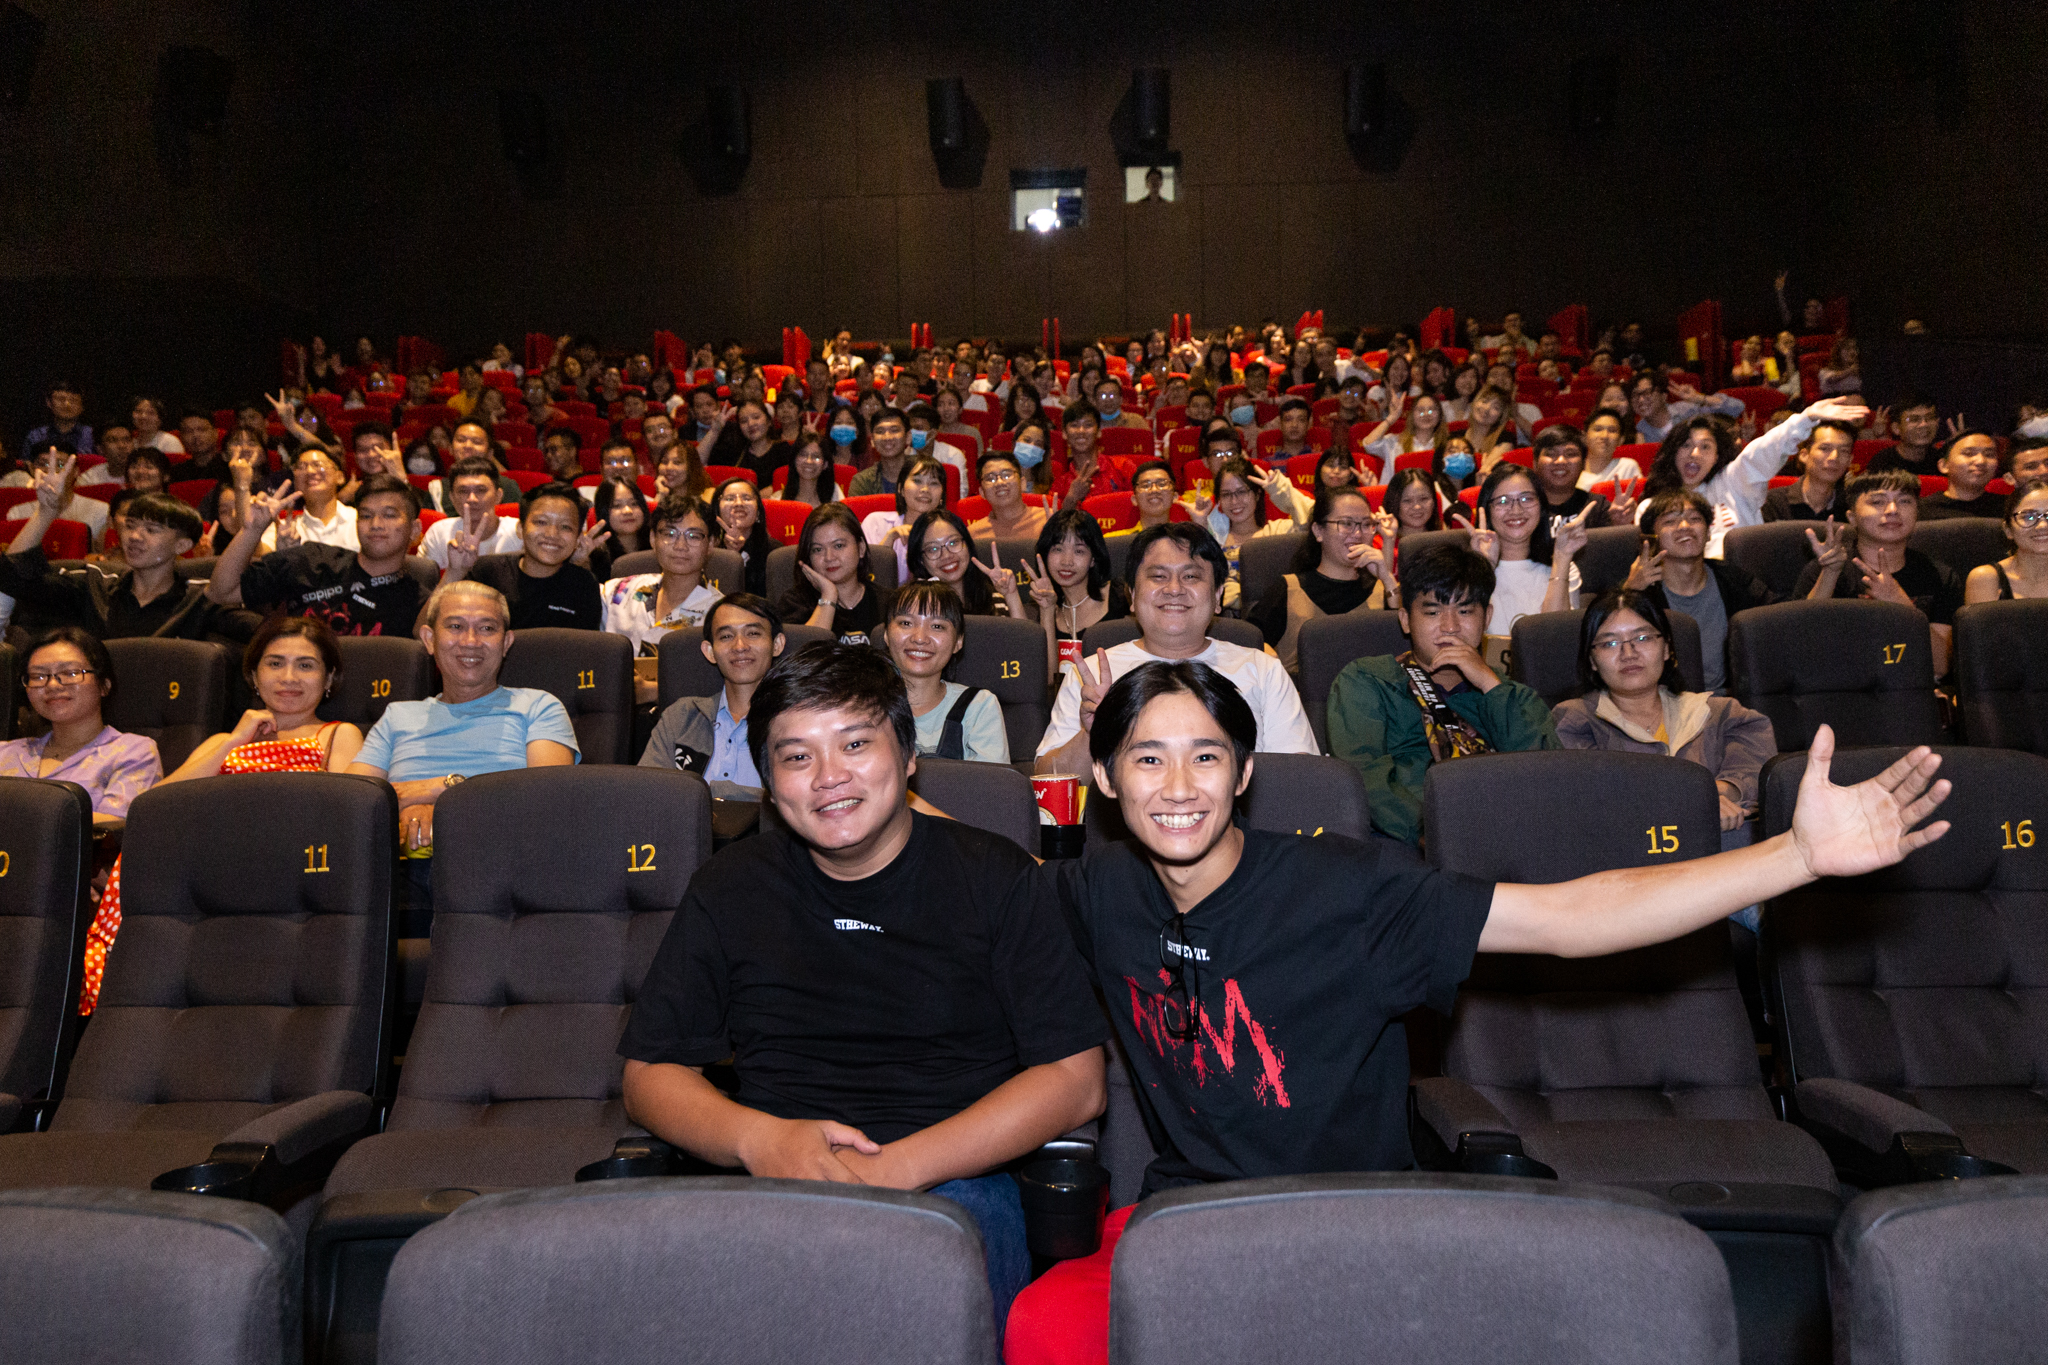 Moviegoers are pictured at a 'Rom' movie screening in this supplied photo.